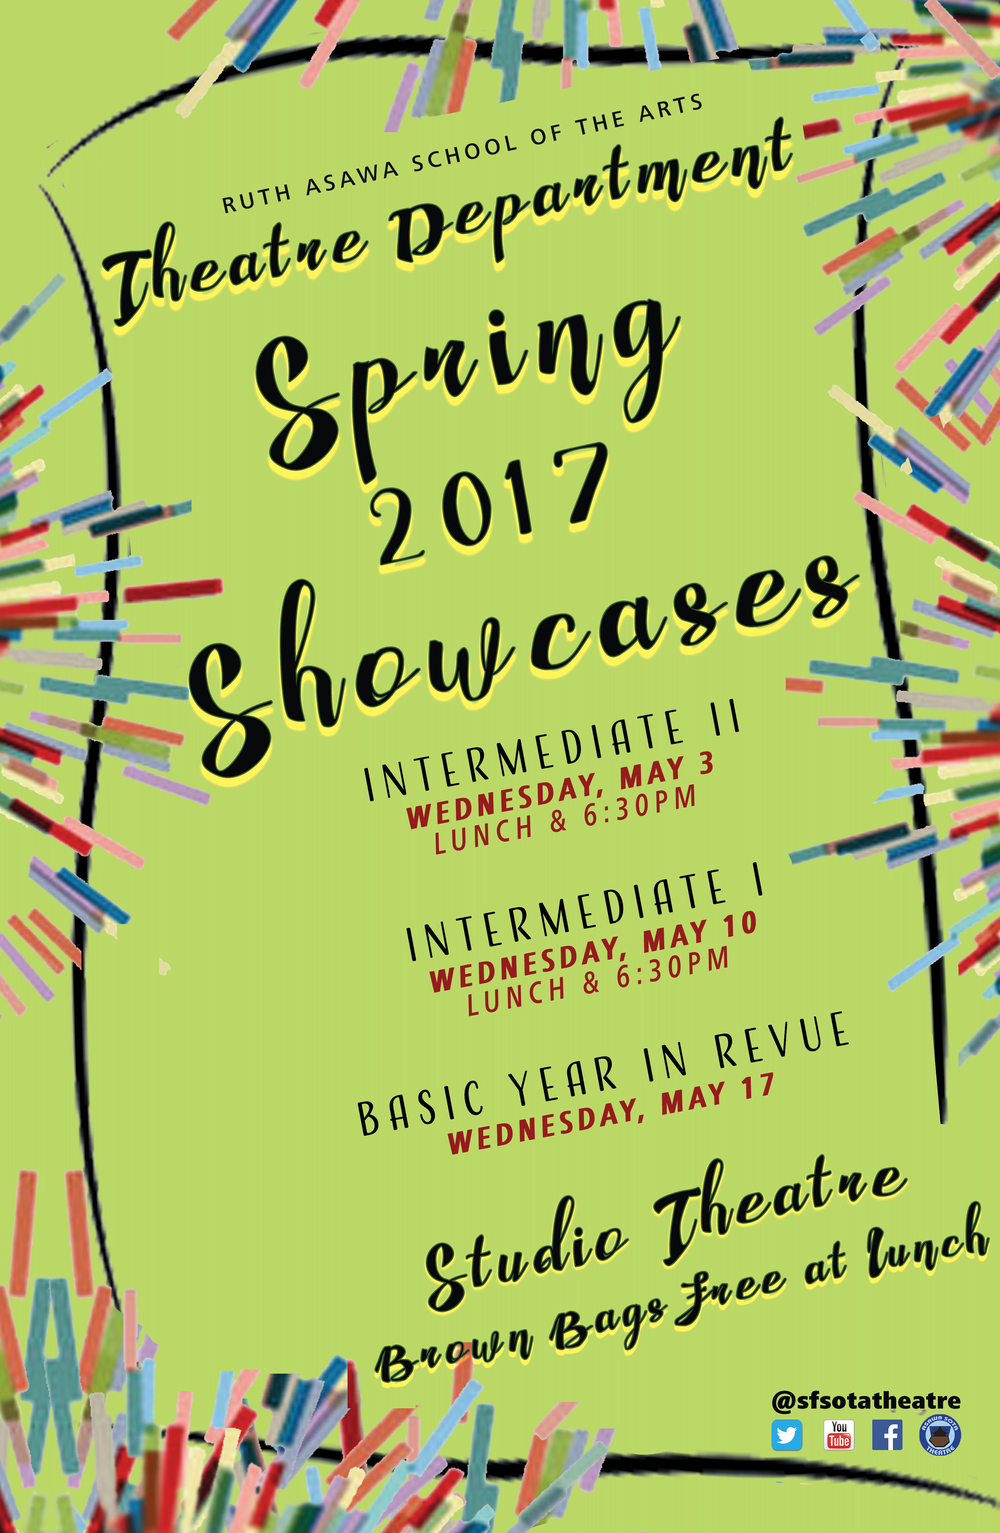 sota theatre spring showcase